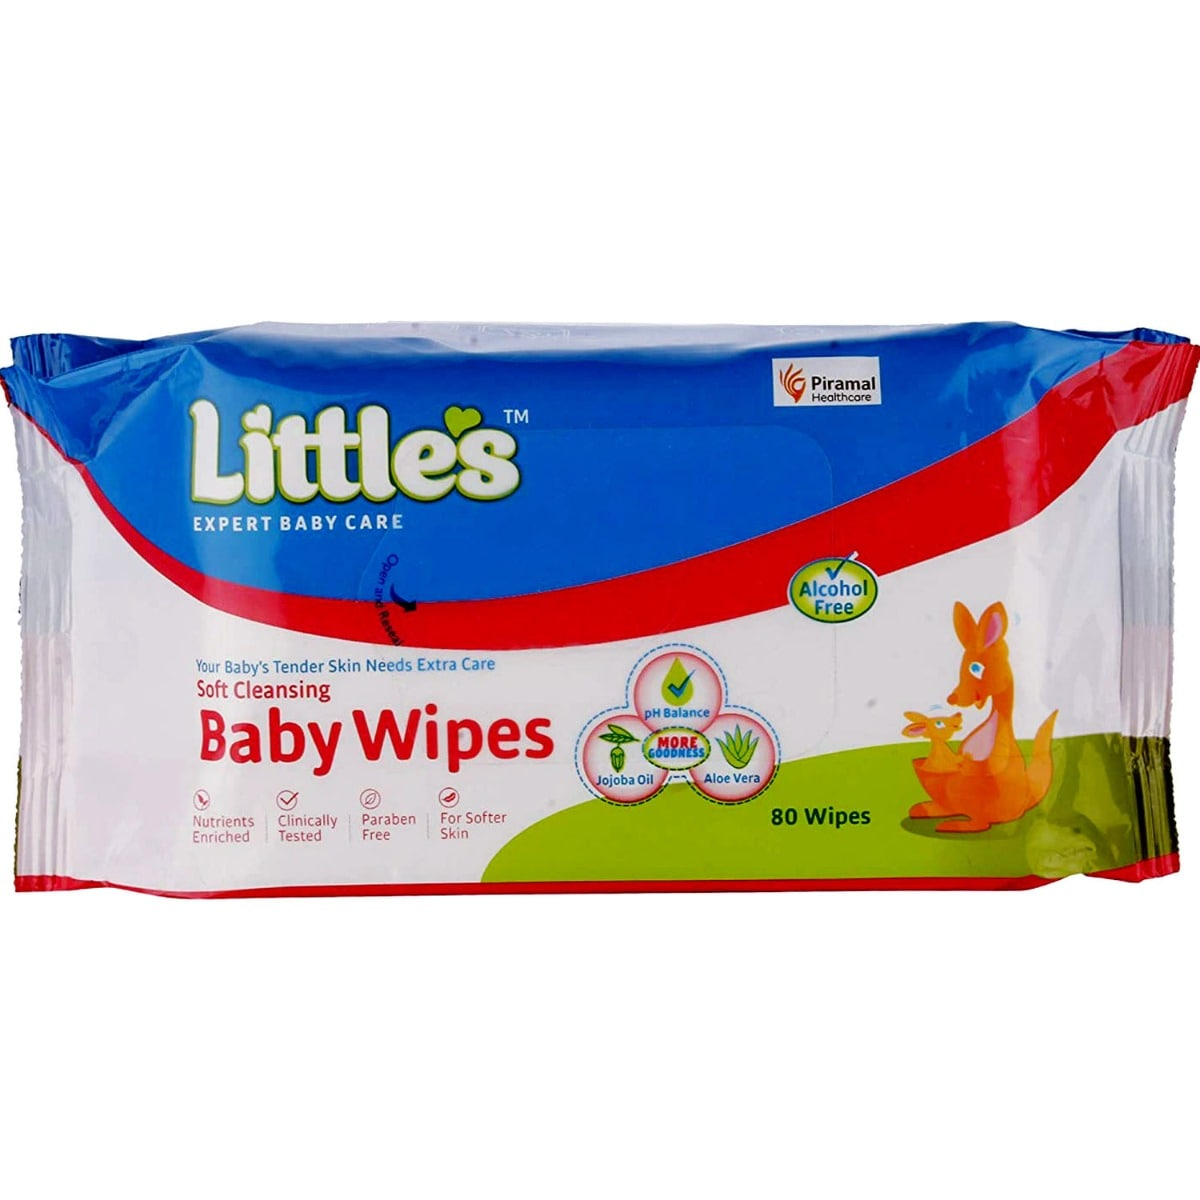 Littles Soft Cleansing Baby Wipes, 80 Count